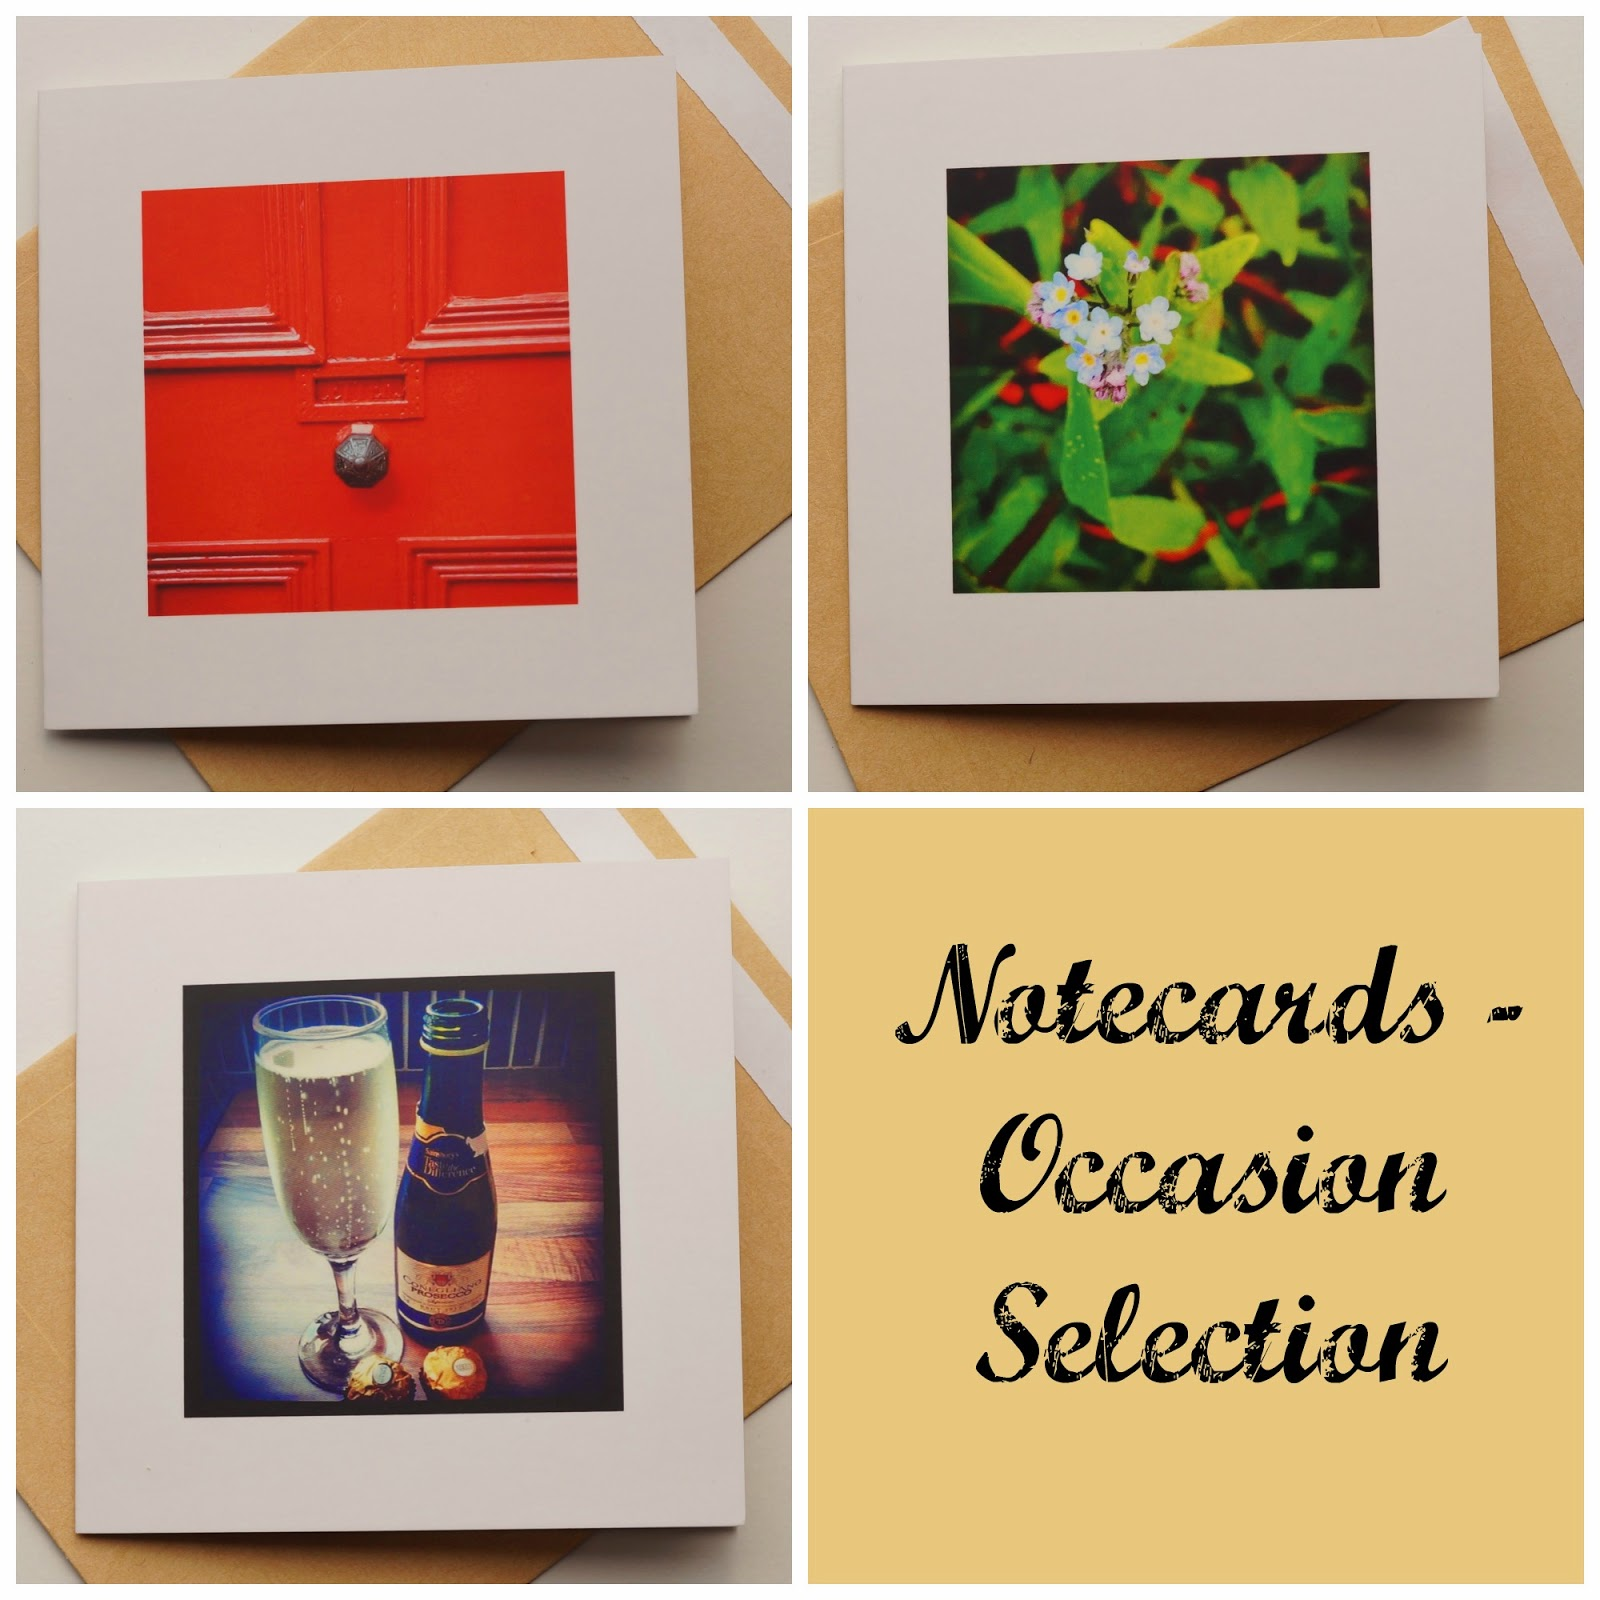 Occasion card collection property of Carrie Gault - ohcherryblossomtattoo.com